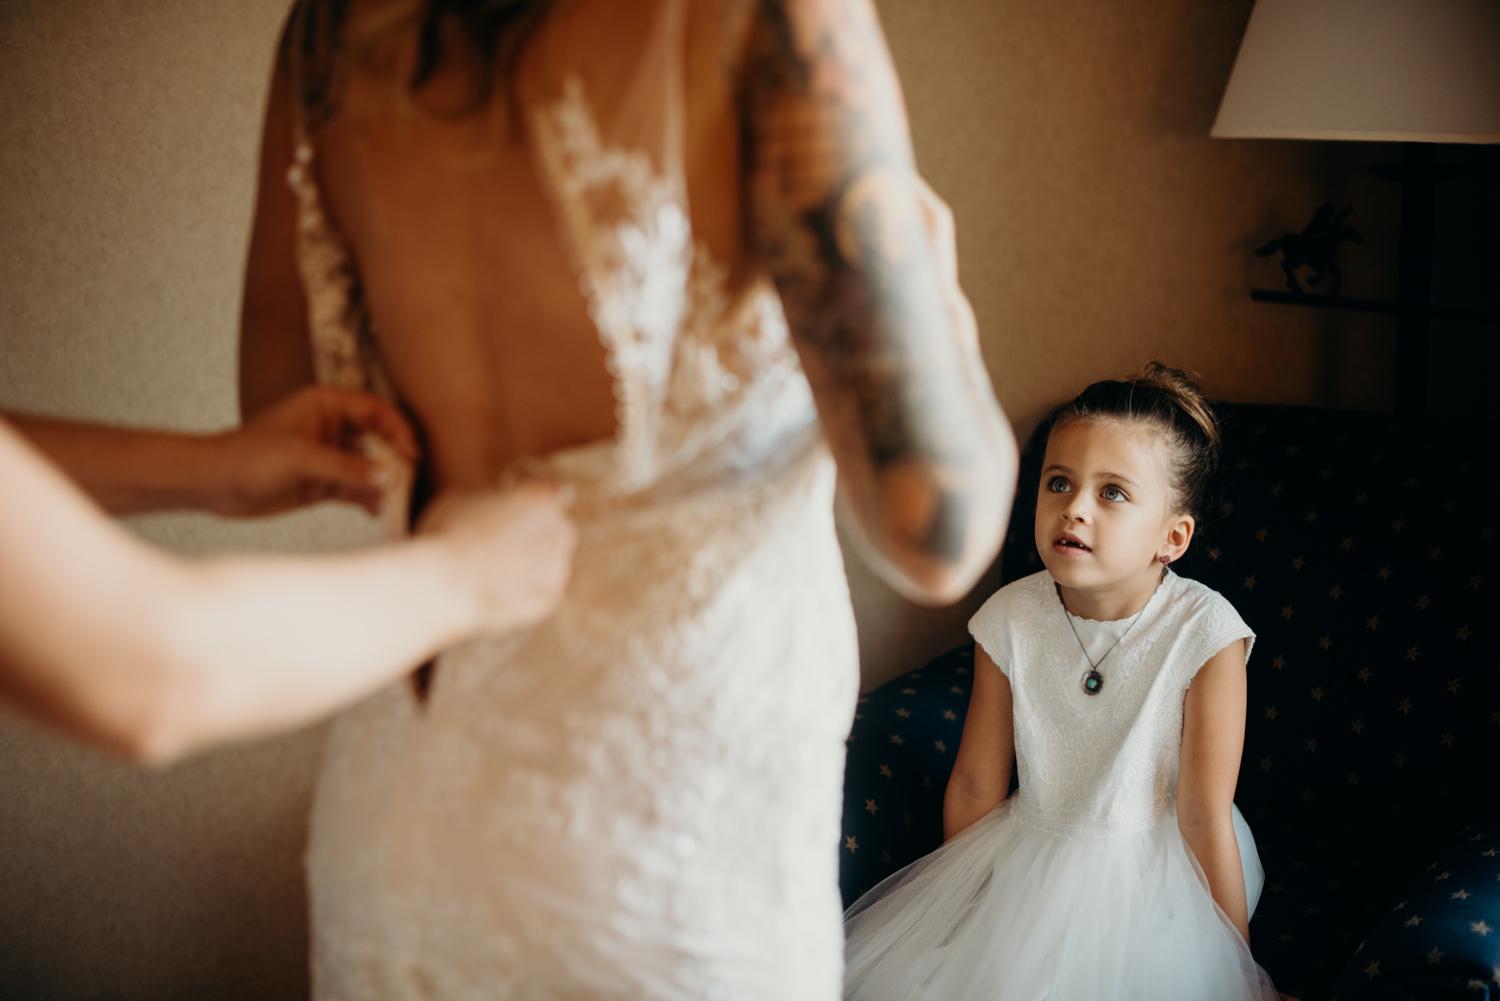 Flower girl watches the bride as she gets dressed on her wedding day in Arizona.